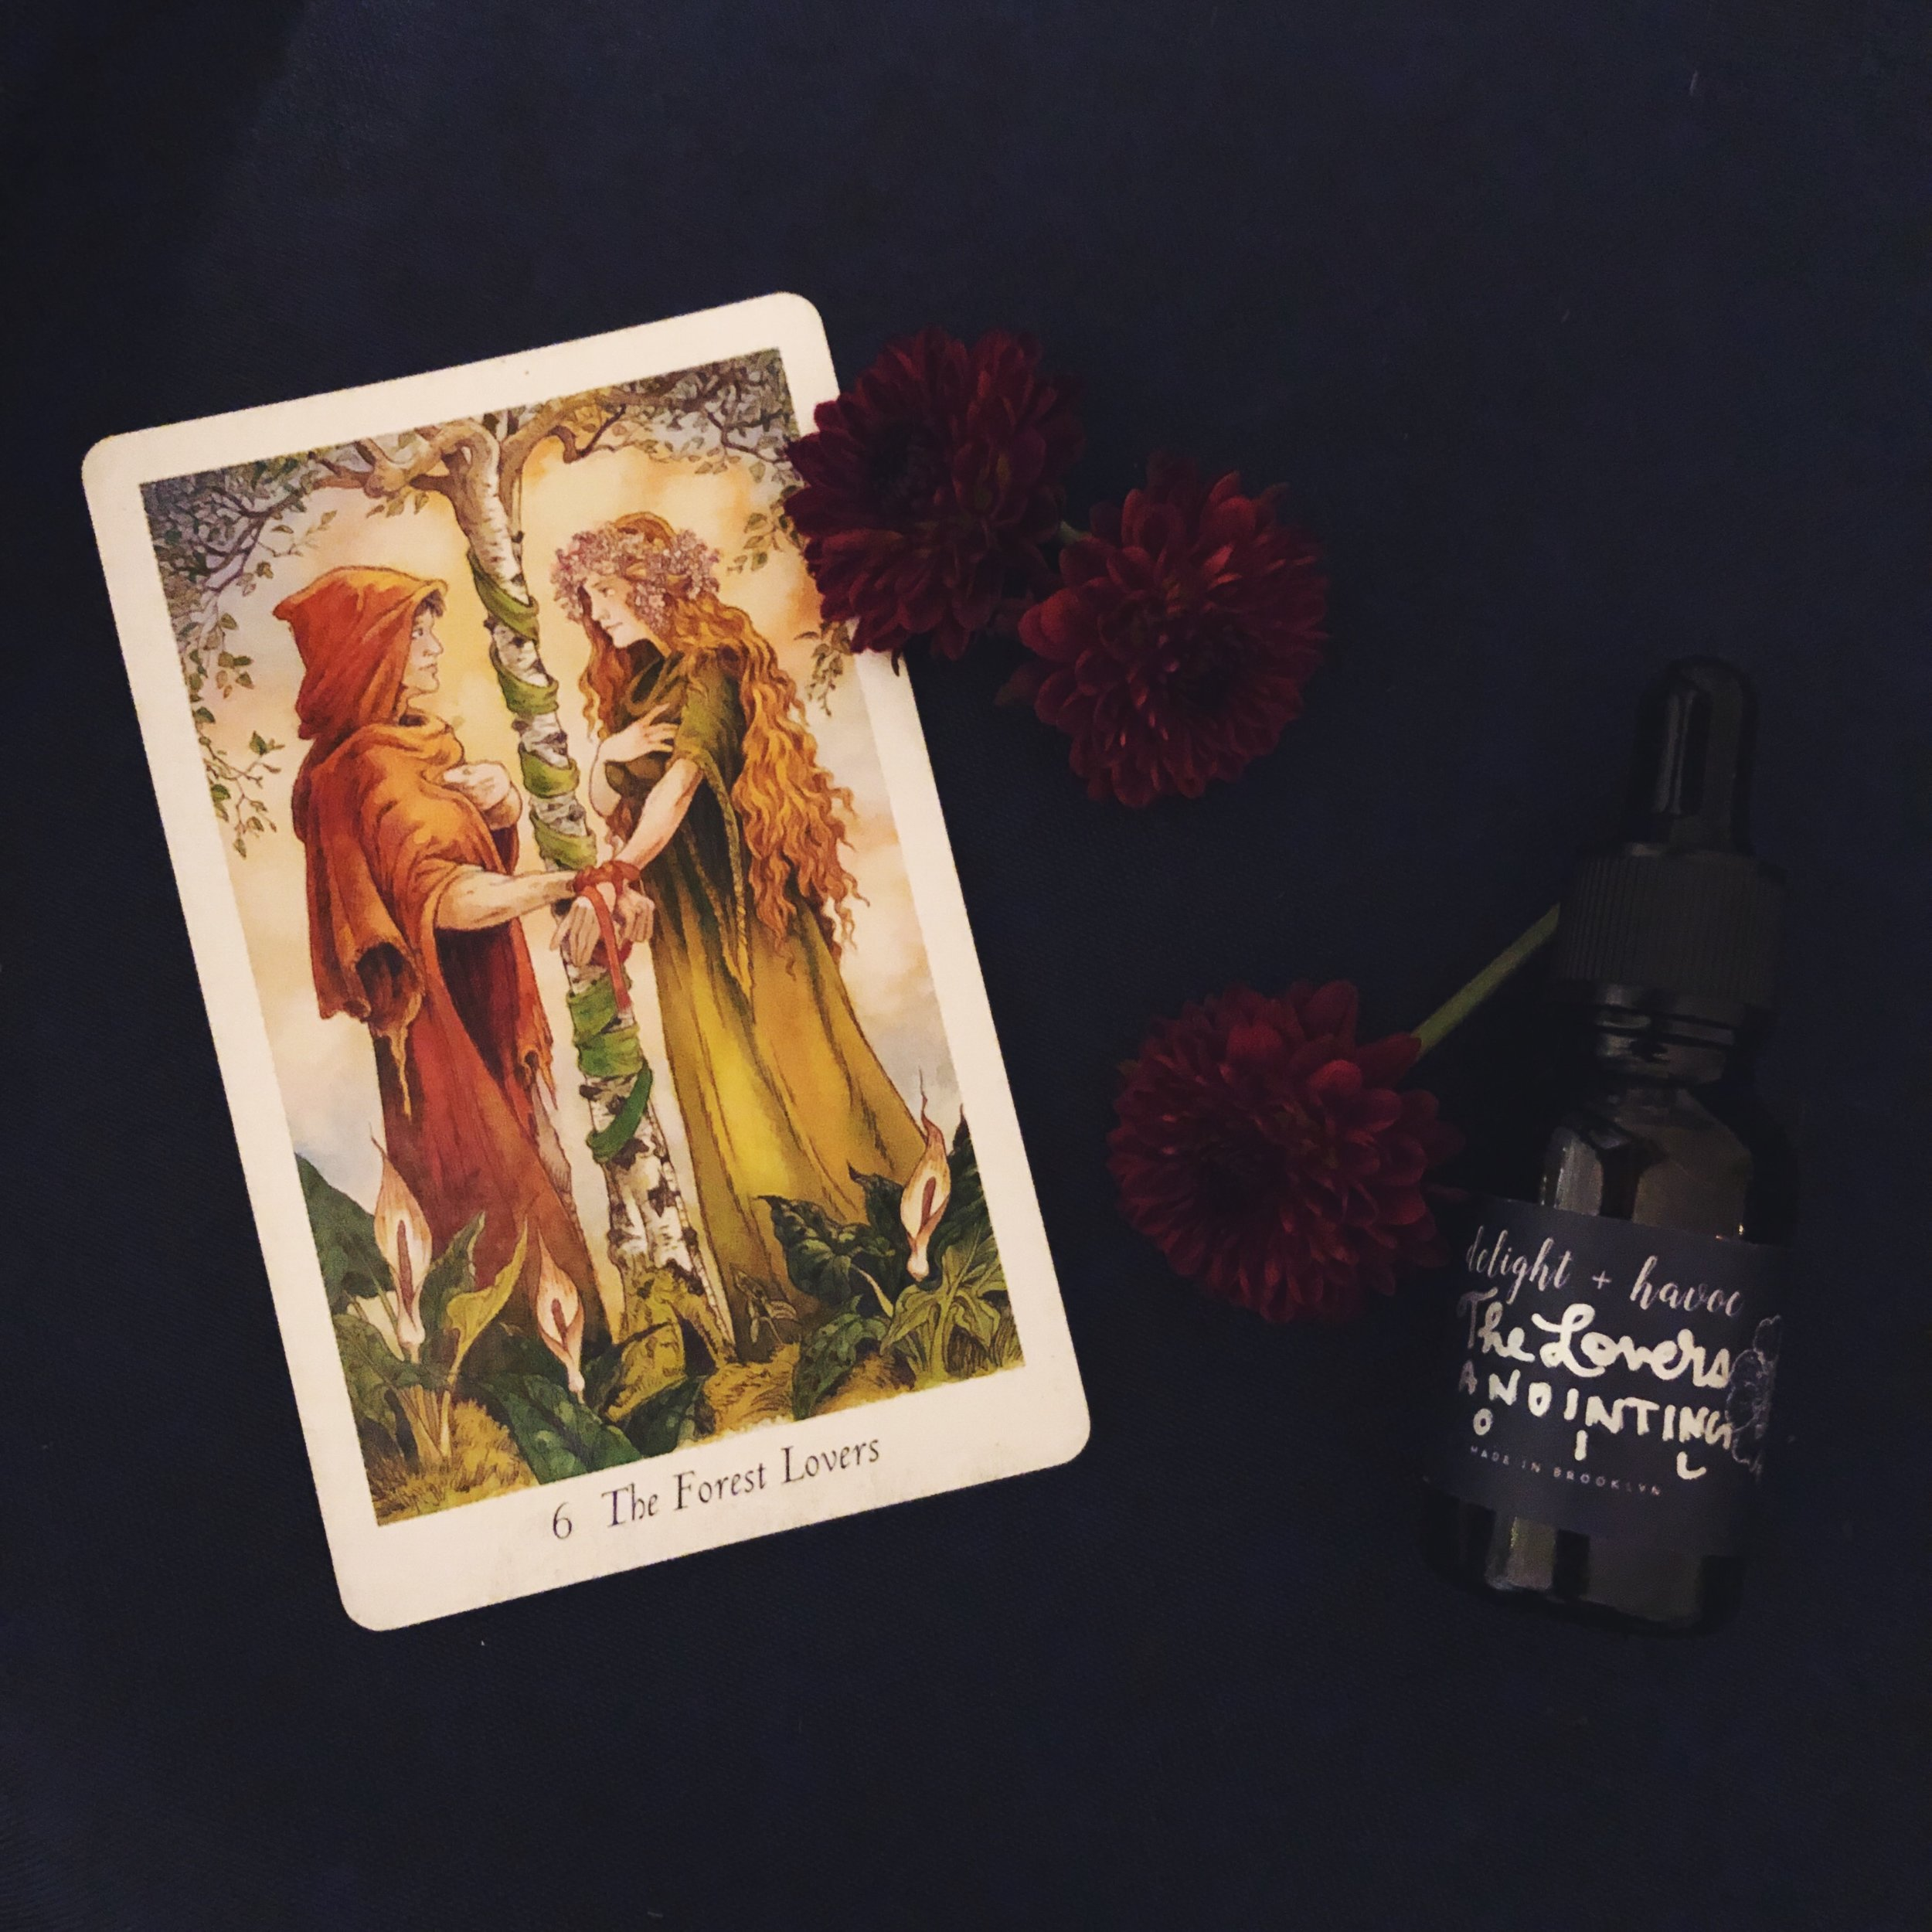 THE LOVERS - Heat-infused, charged, and blessed on the Full Moon in Taurus on the first day of the 2018 Scorpio season (wow), THE LOVERS Anointing Oil is a seriously sexy blend of flowers, resins, plants, and herbs to raise some hot vibrations between you and your potential lover (even if that lover is yourself!).Perfect for:- Sex magic- Attraction spells- Love spells (which we don't necessarily recommend, but do you)- Self love spells (these we DEFINITELY recommend)- Root chakra energy work